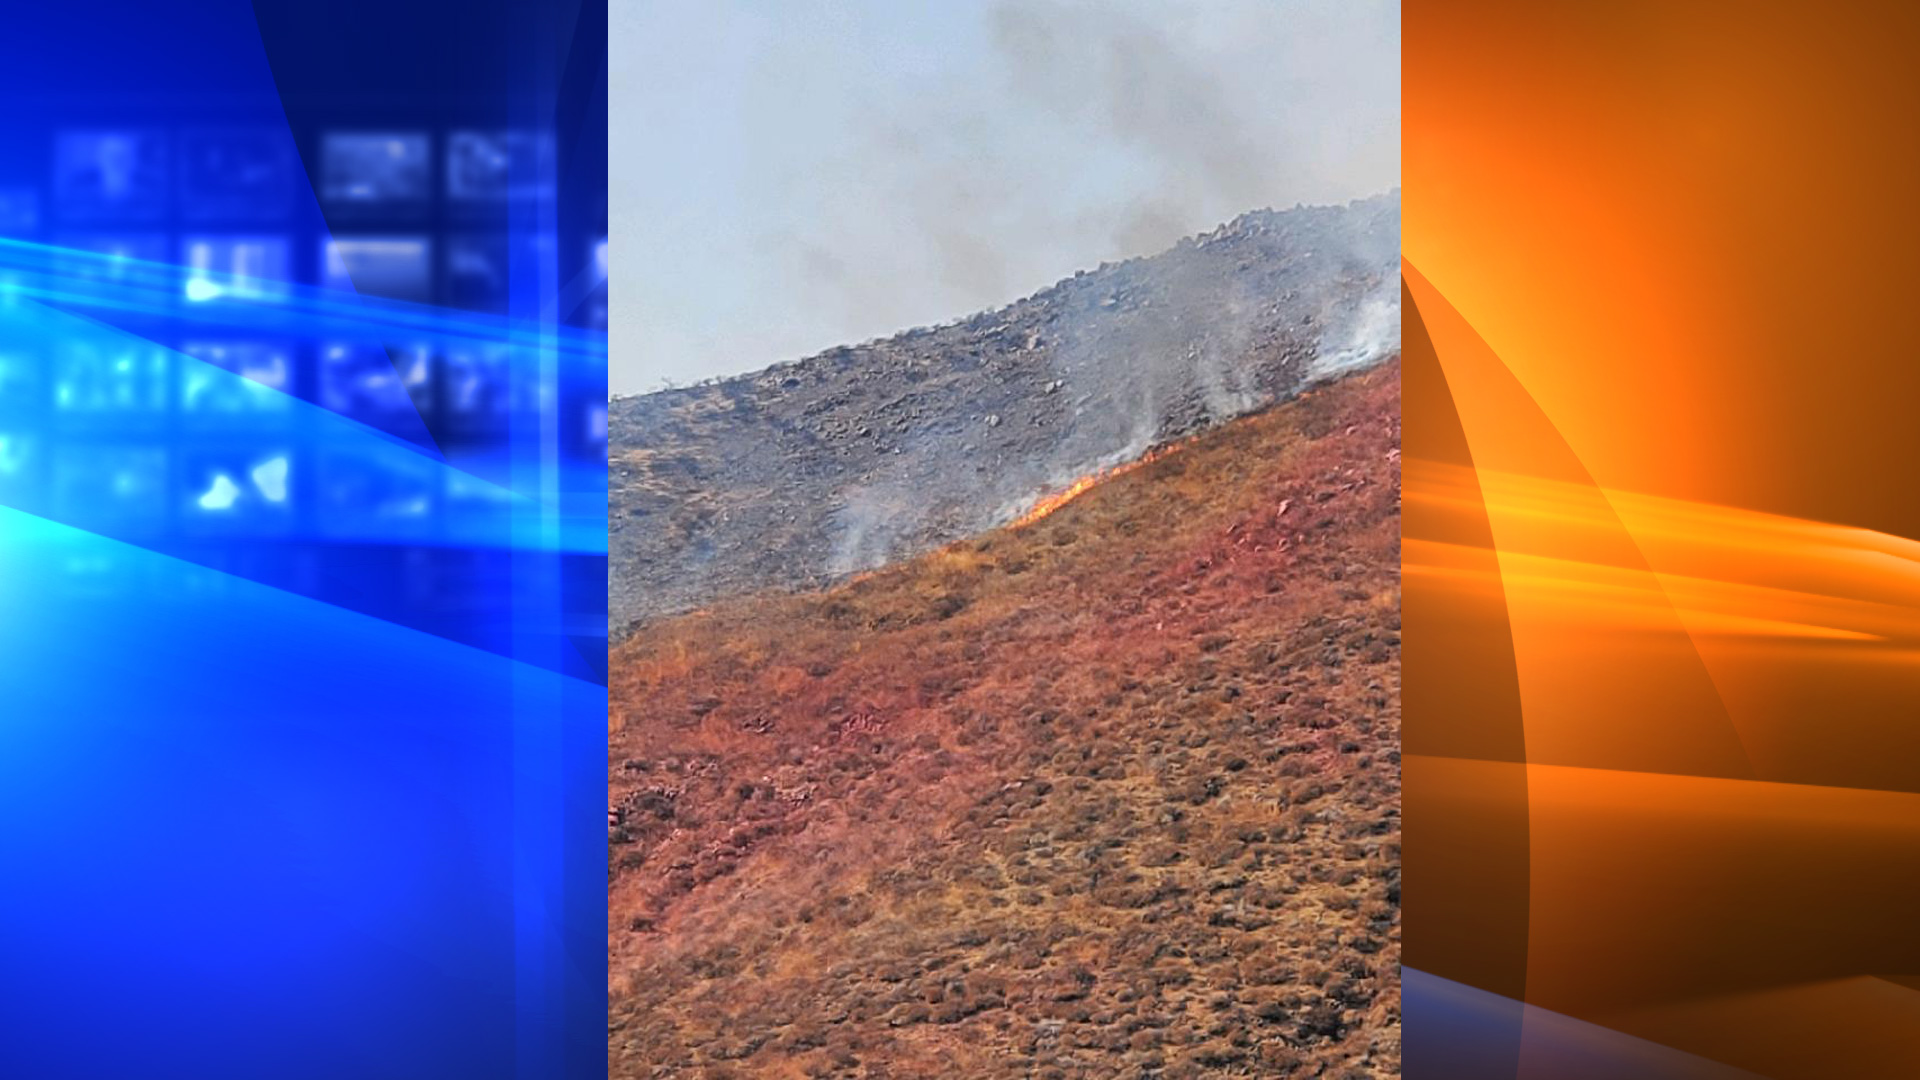 Cal Fire Riverside tweeted a photo of a vegetation fire on Sept. 29, 2020, near Lake Mathews and Perris.